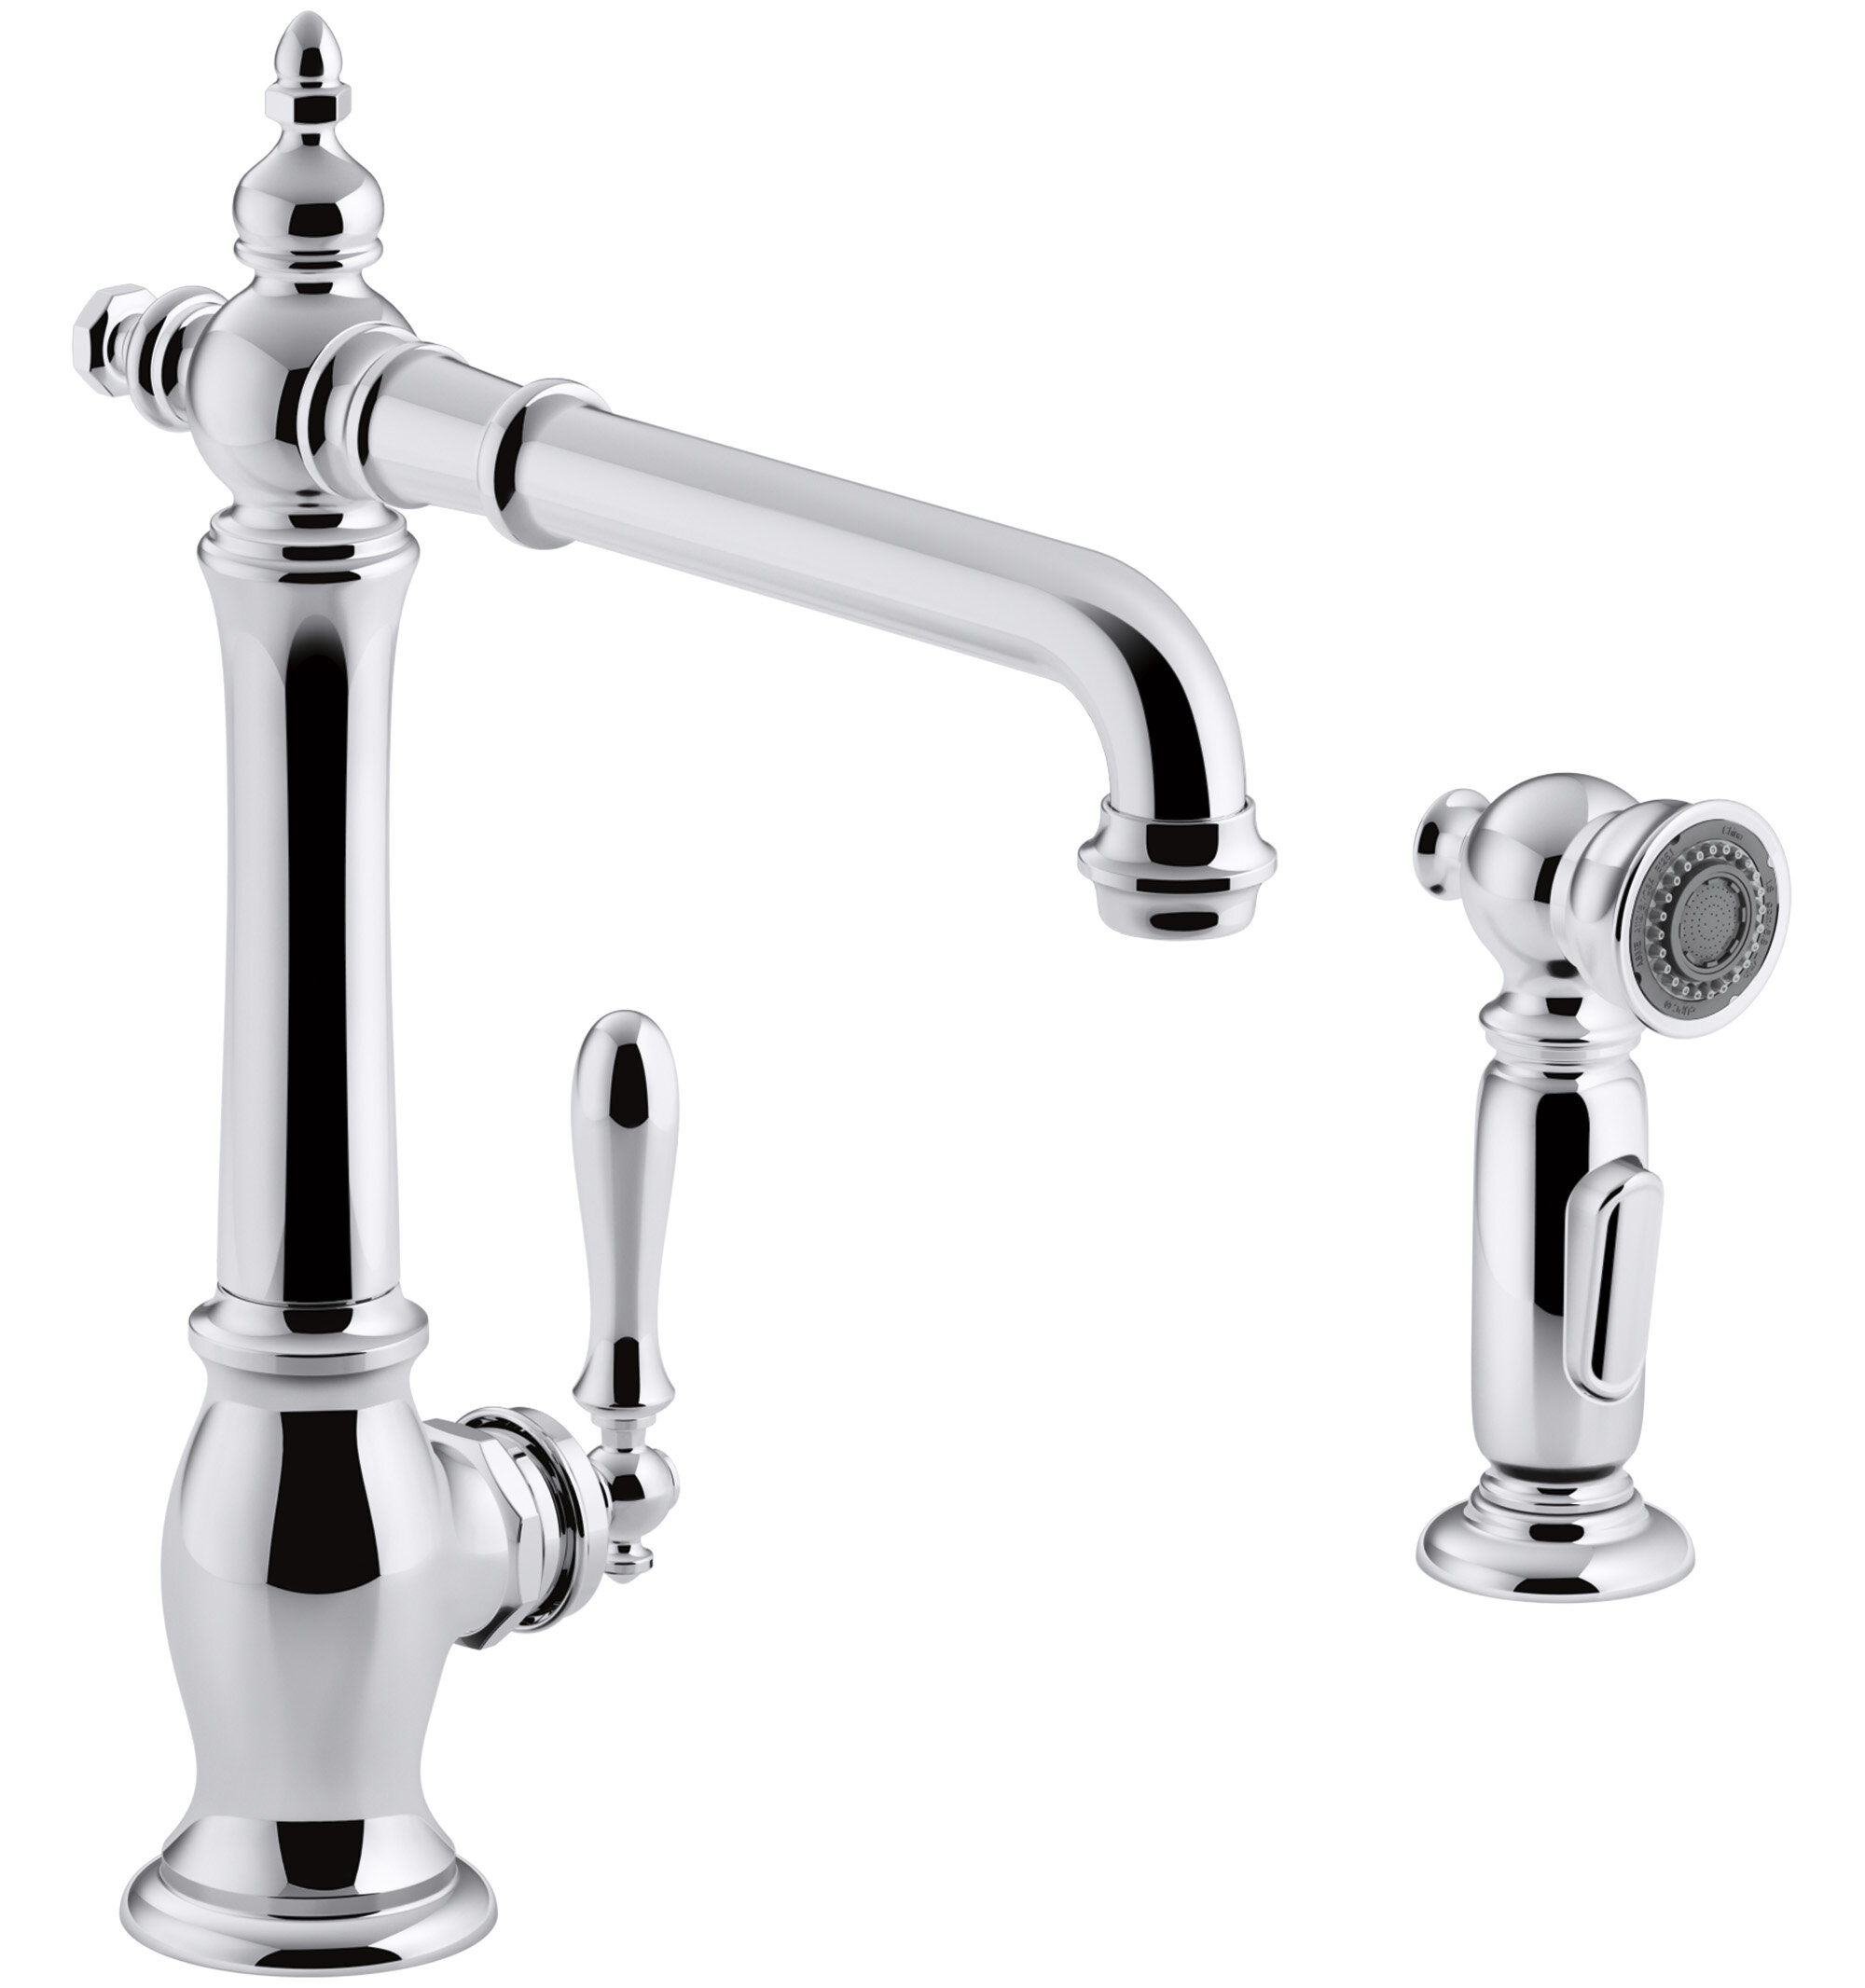 99265 cpk  snk  vs kohler artifacts   2 hole kitchen sink faucet with 13 1  2   swing spout and matching finish two function sidespray with sweep        99265 cpk  snk  vs kohler artifacts   2 hole kitchen sink faucet      rh   wayfair com